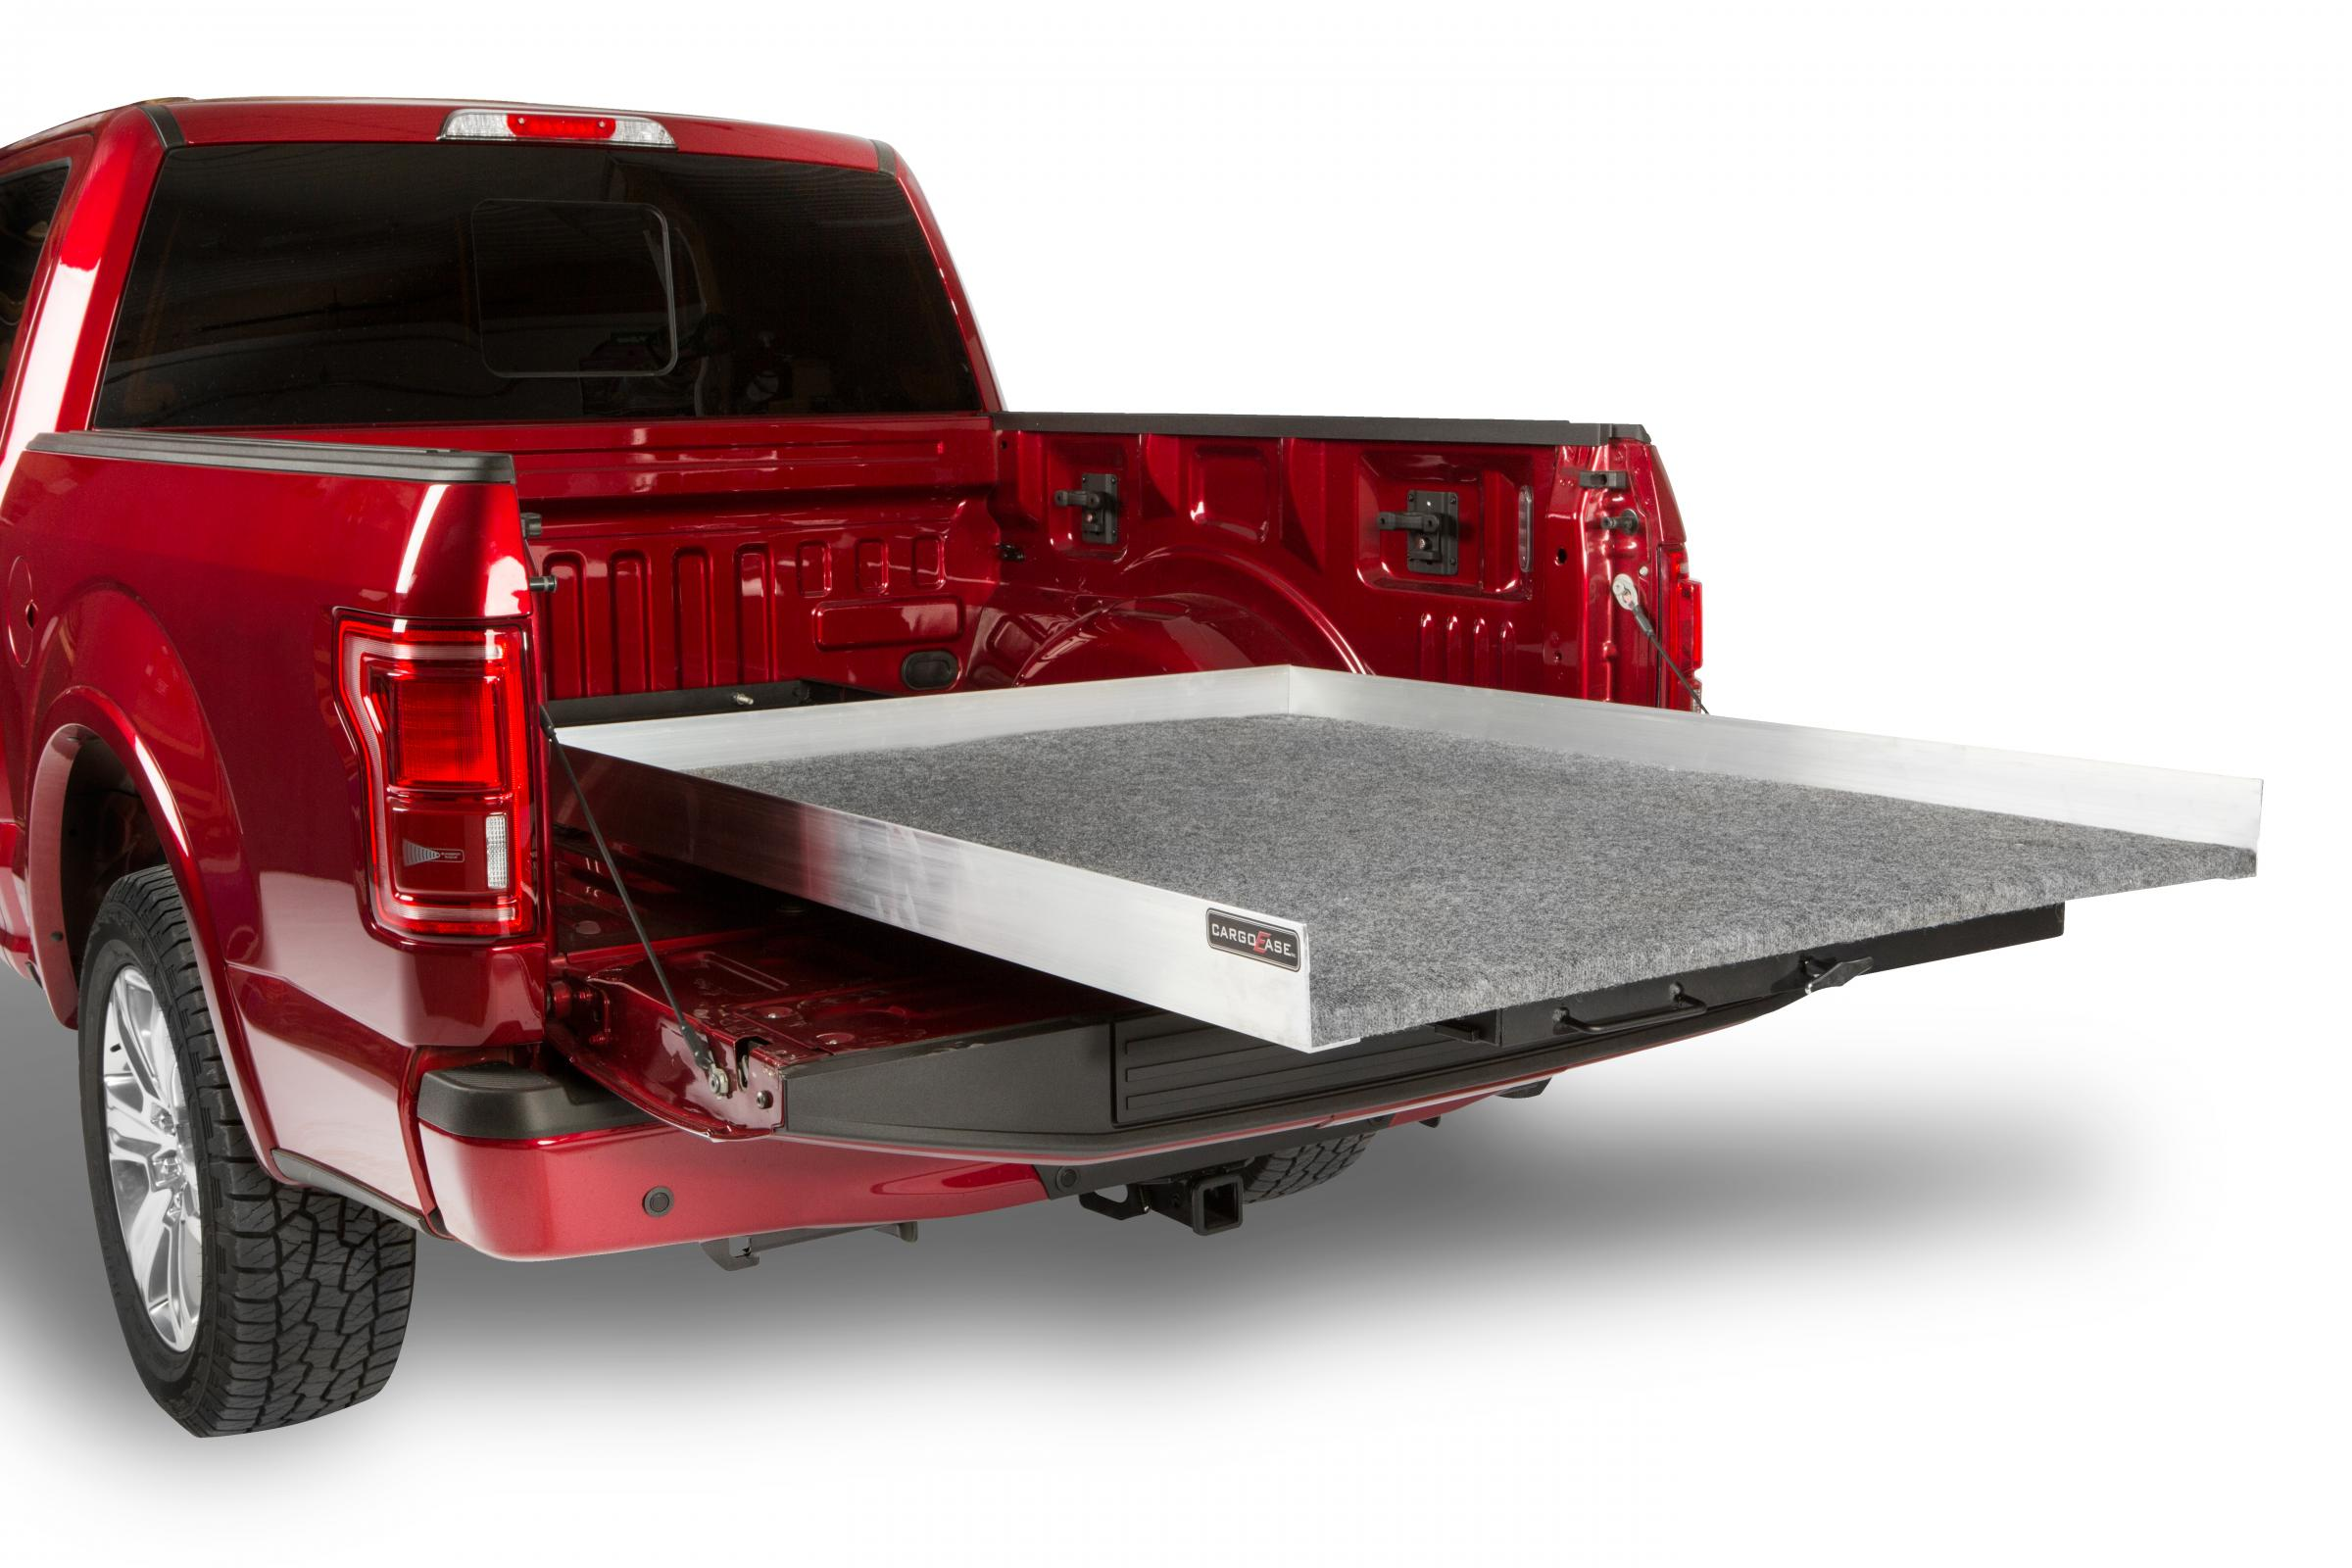 CE9548 Cargo Ease Bed Slide 1200 Pound Capacity